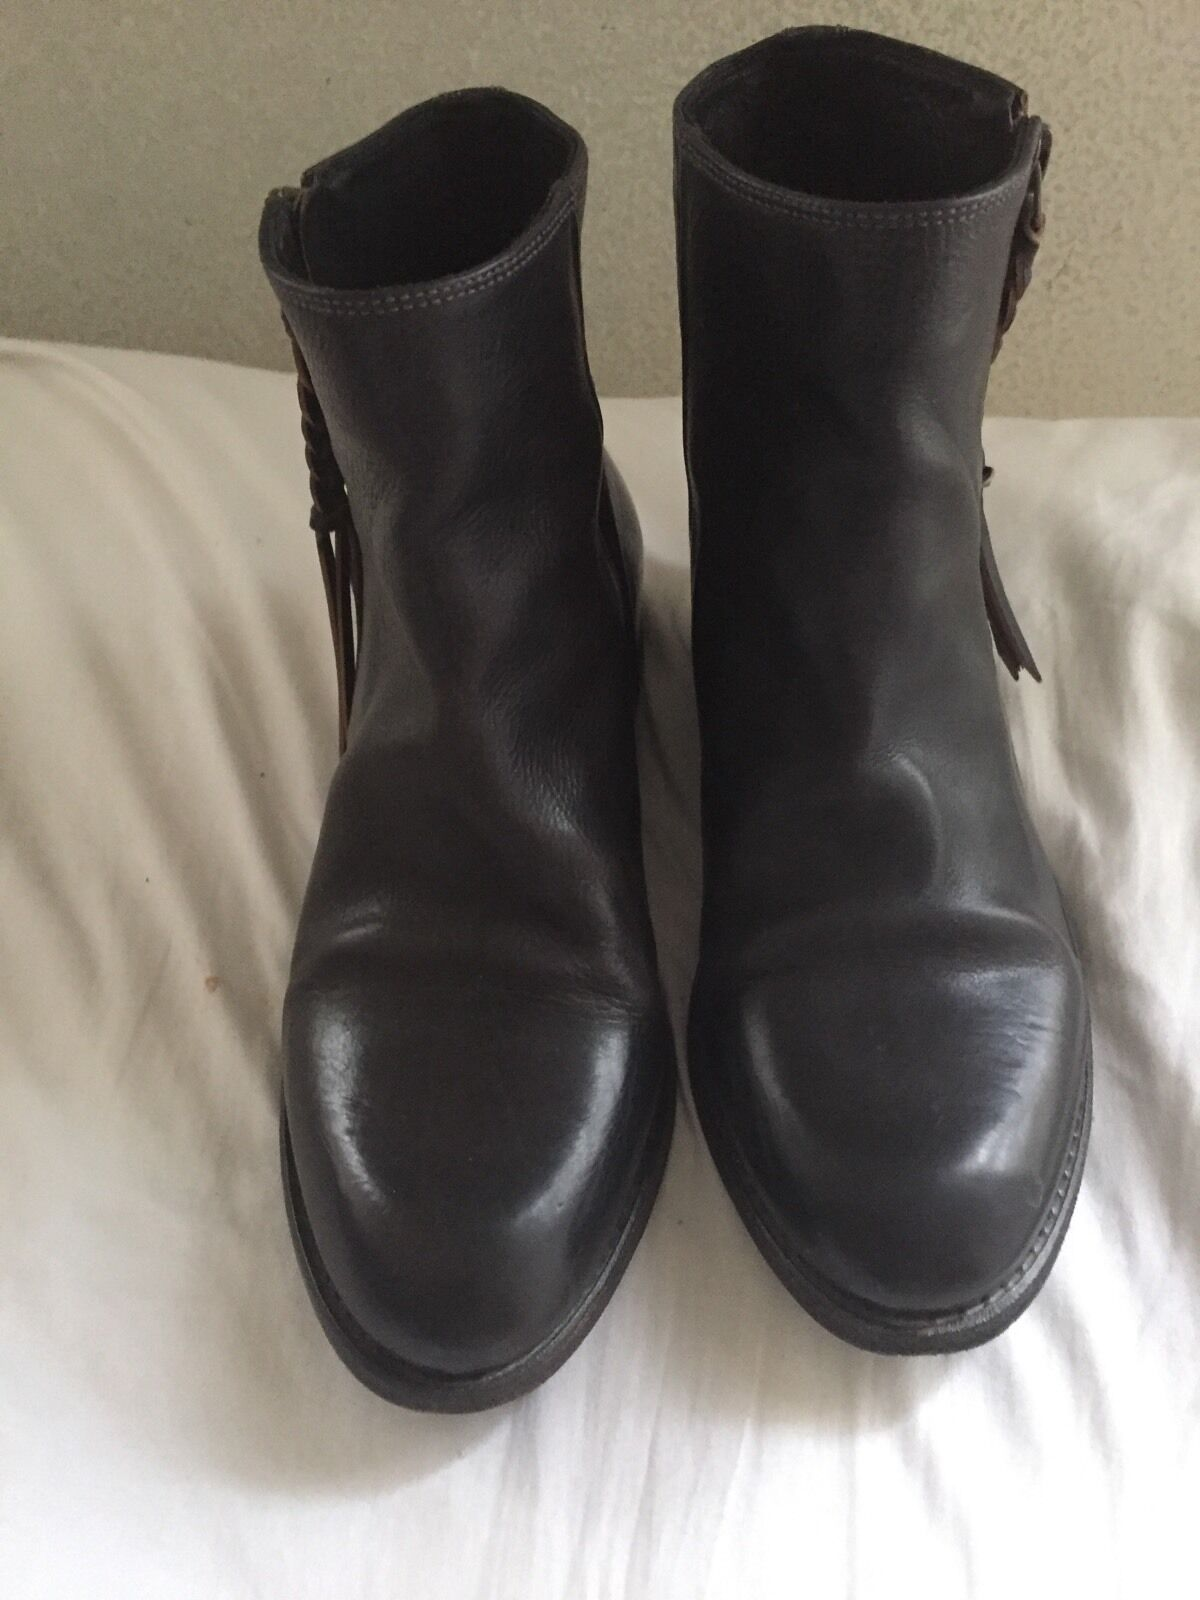 N.D.C. Made By Hand  Genna Mahogany Brown Leather Ankle Booties 36 US 6  $560